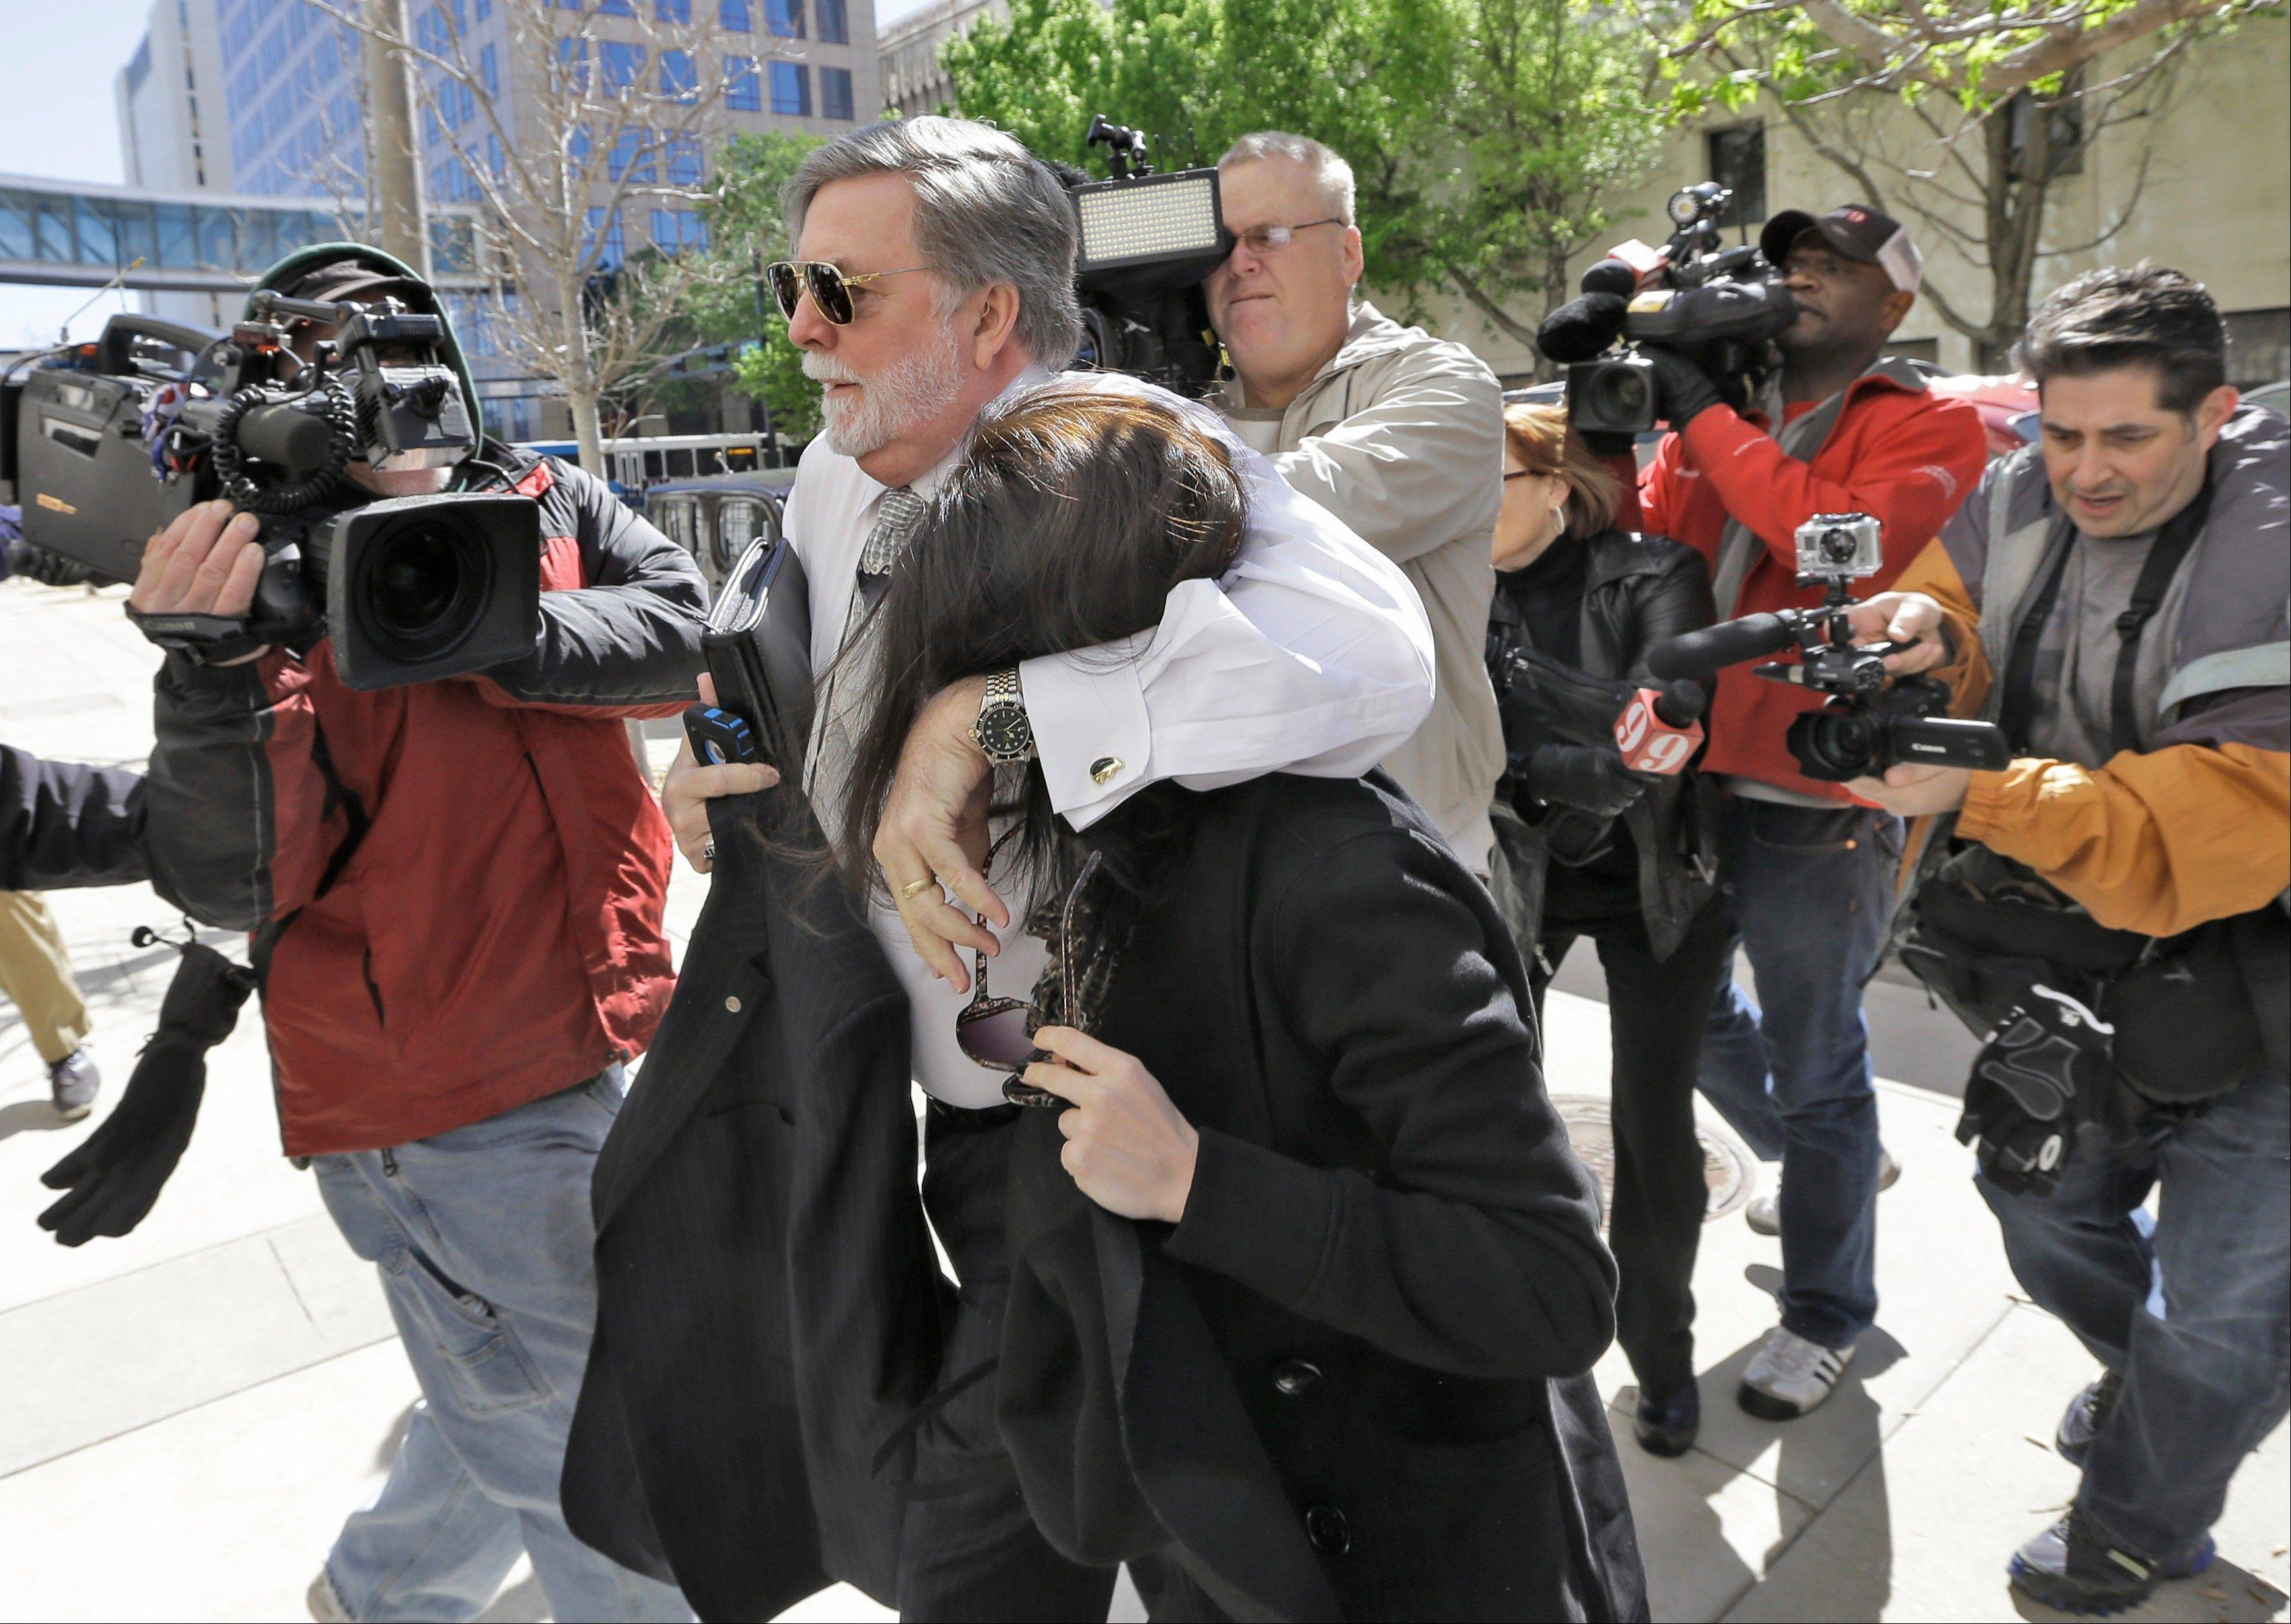 Casey Anthony is protected from the media by her attorney Cheney Mason as she arrives at the United States Courthouse for a bankruptcy hearing Monday in Tampa, Fla. Anthony has not been seen in public since being acquitted in 2011 of murdering her two-year-old daughter Caylee.